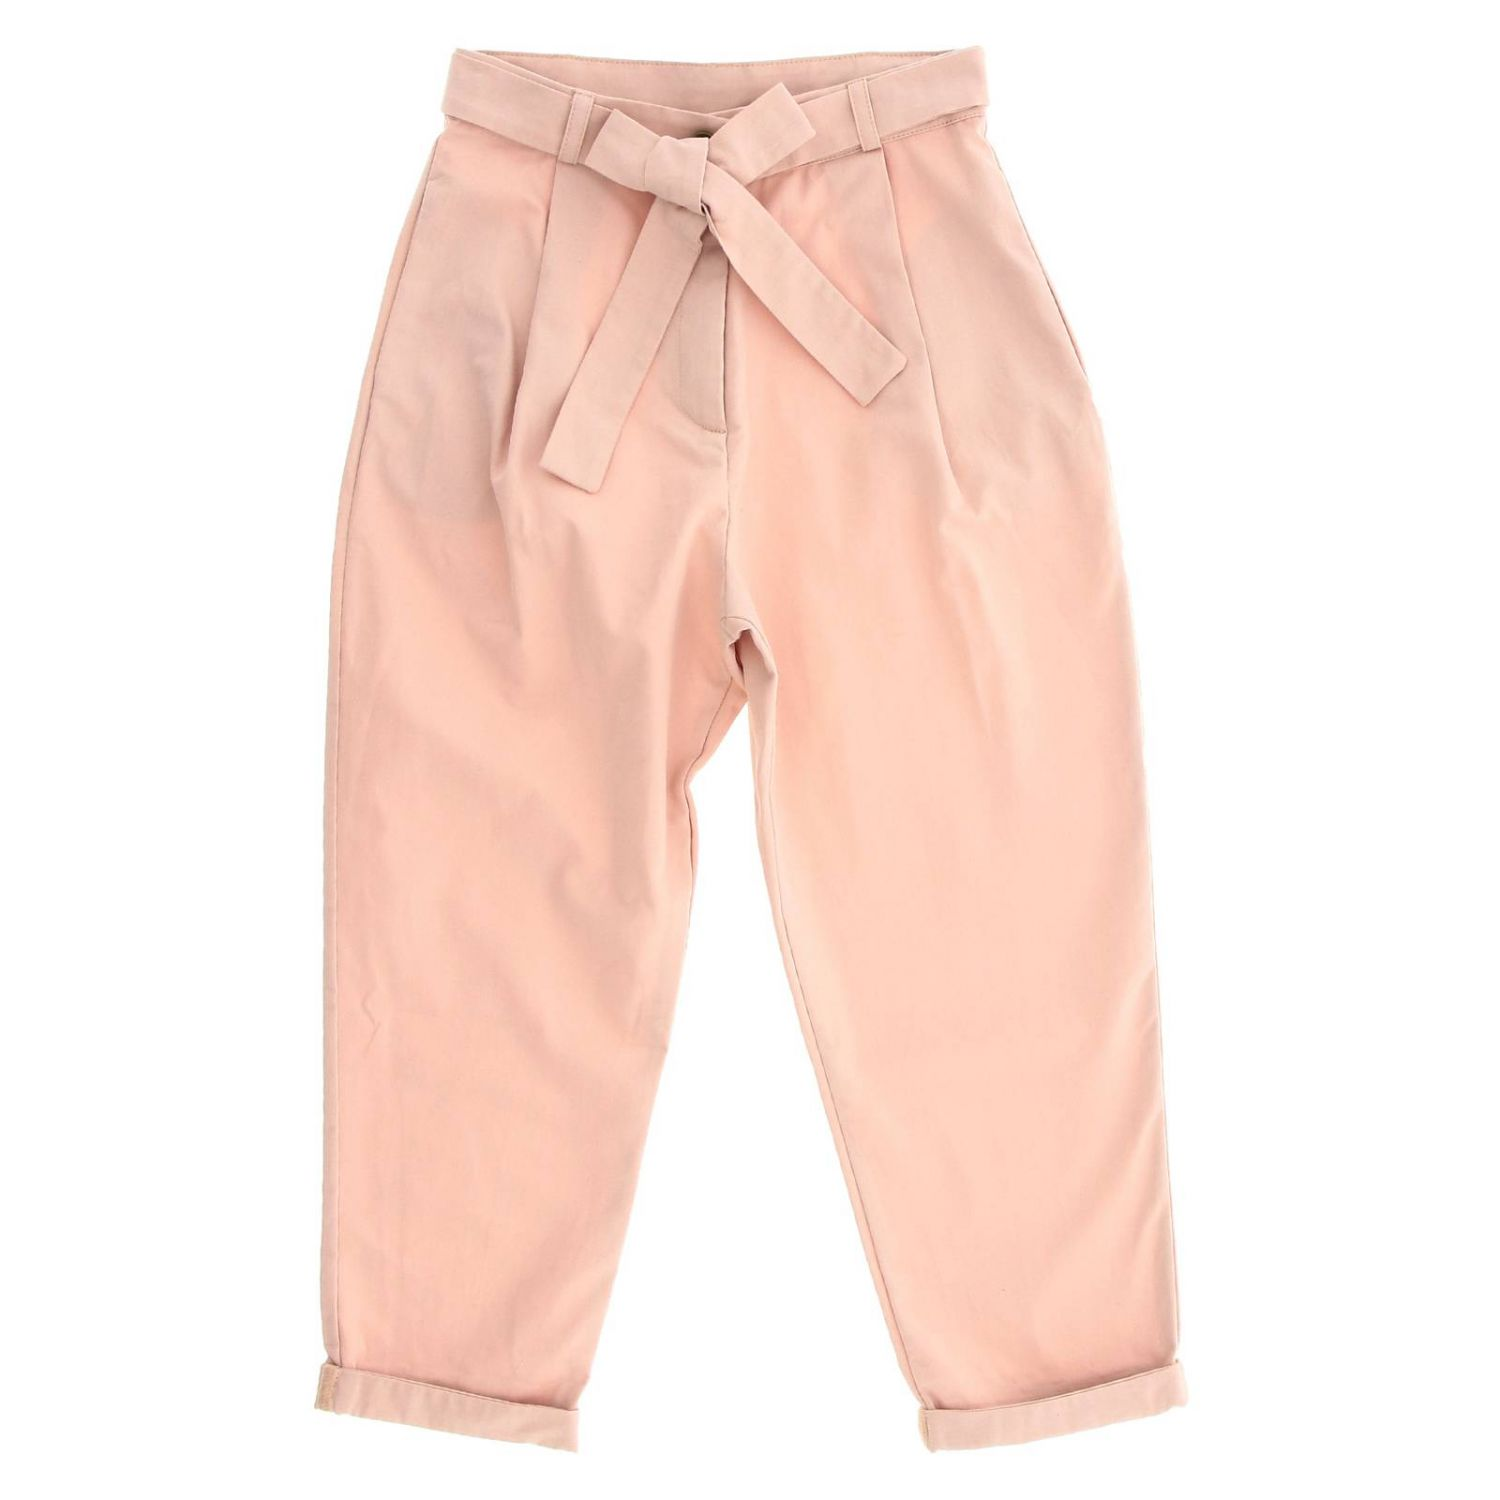 Trousers Caffe' D'orzo: Trousers kids Caffe' D'orzo pink 1